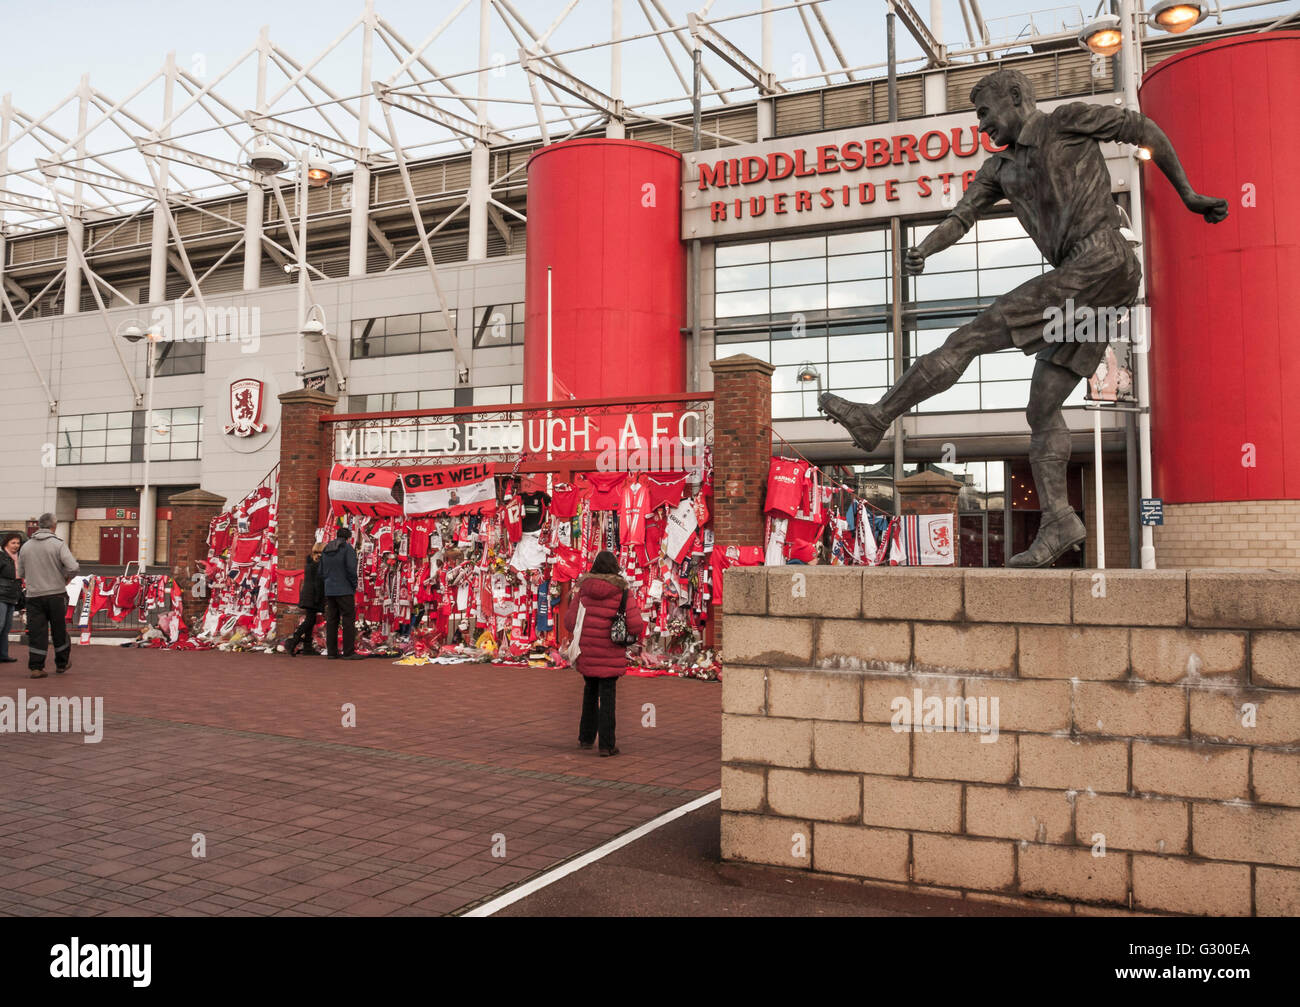 Fans look at the tributes at Middlesbrough football stadium to Alastair Brownlee,football commentator,who died in - Stock Image